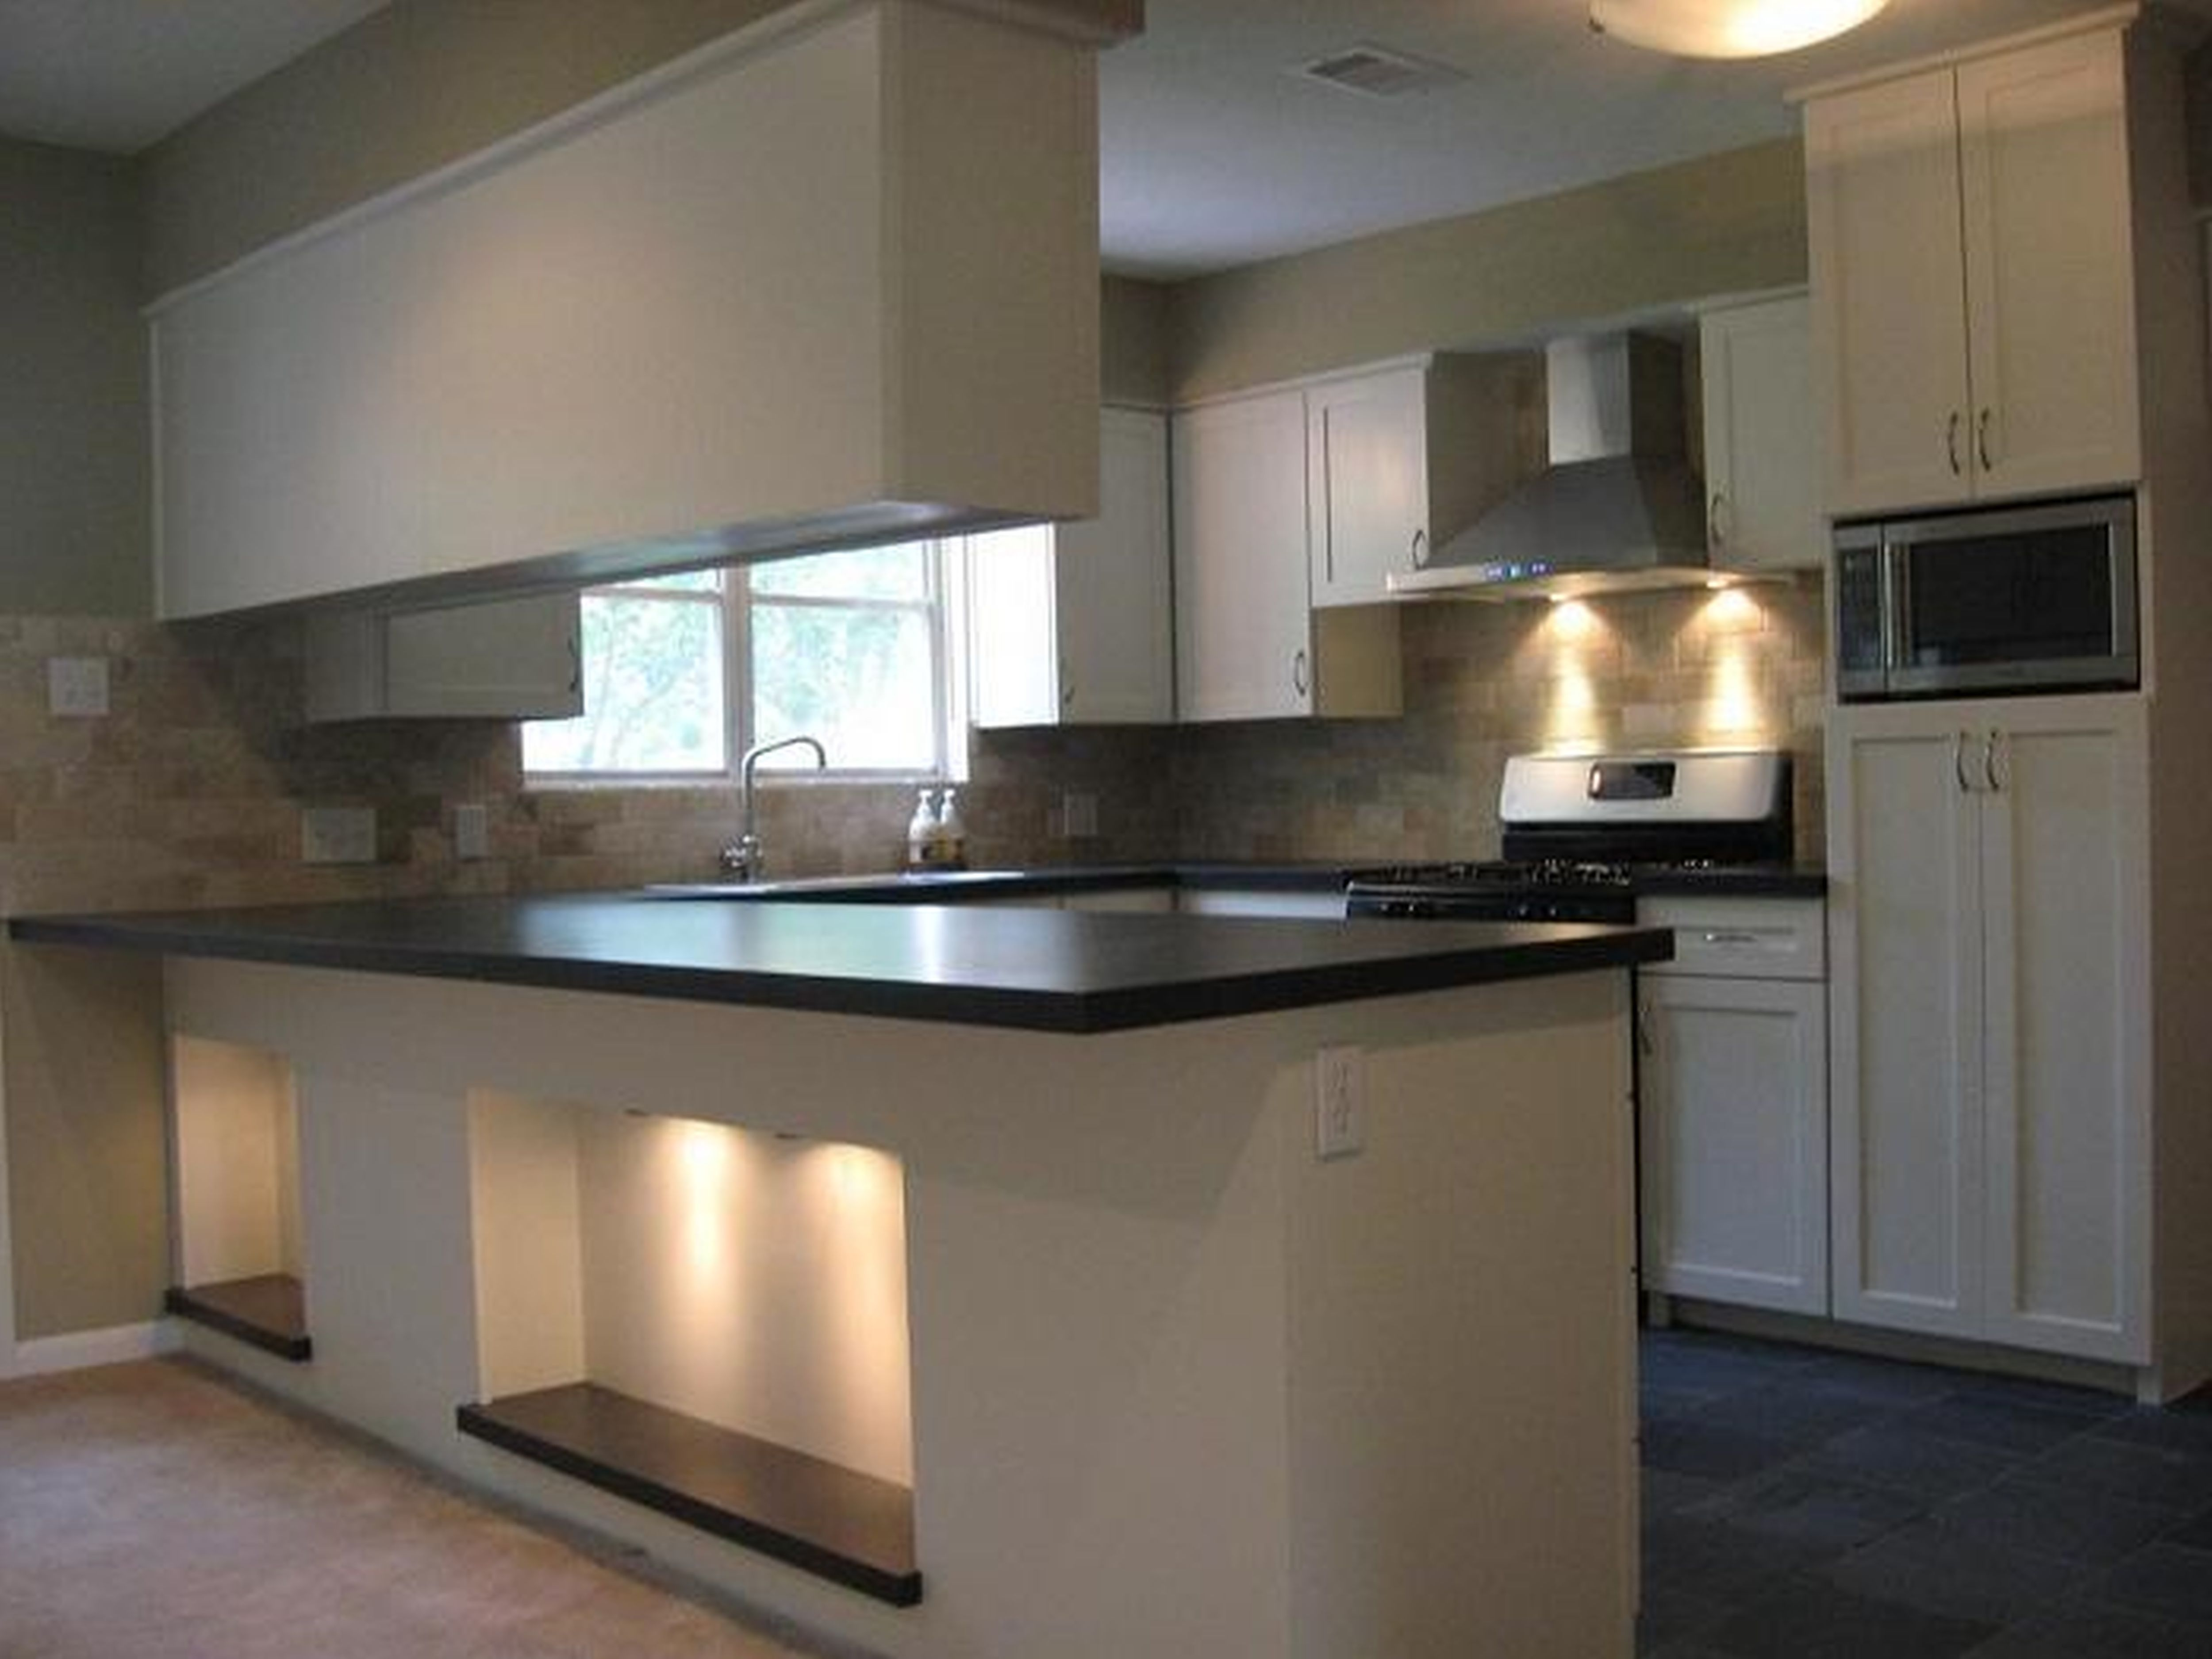 If We Paint Our Cabinets White This Backsplash Actually Would Adorable Latest Kitchen Designs Uk 2018